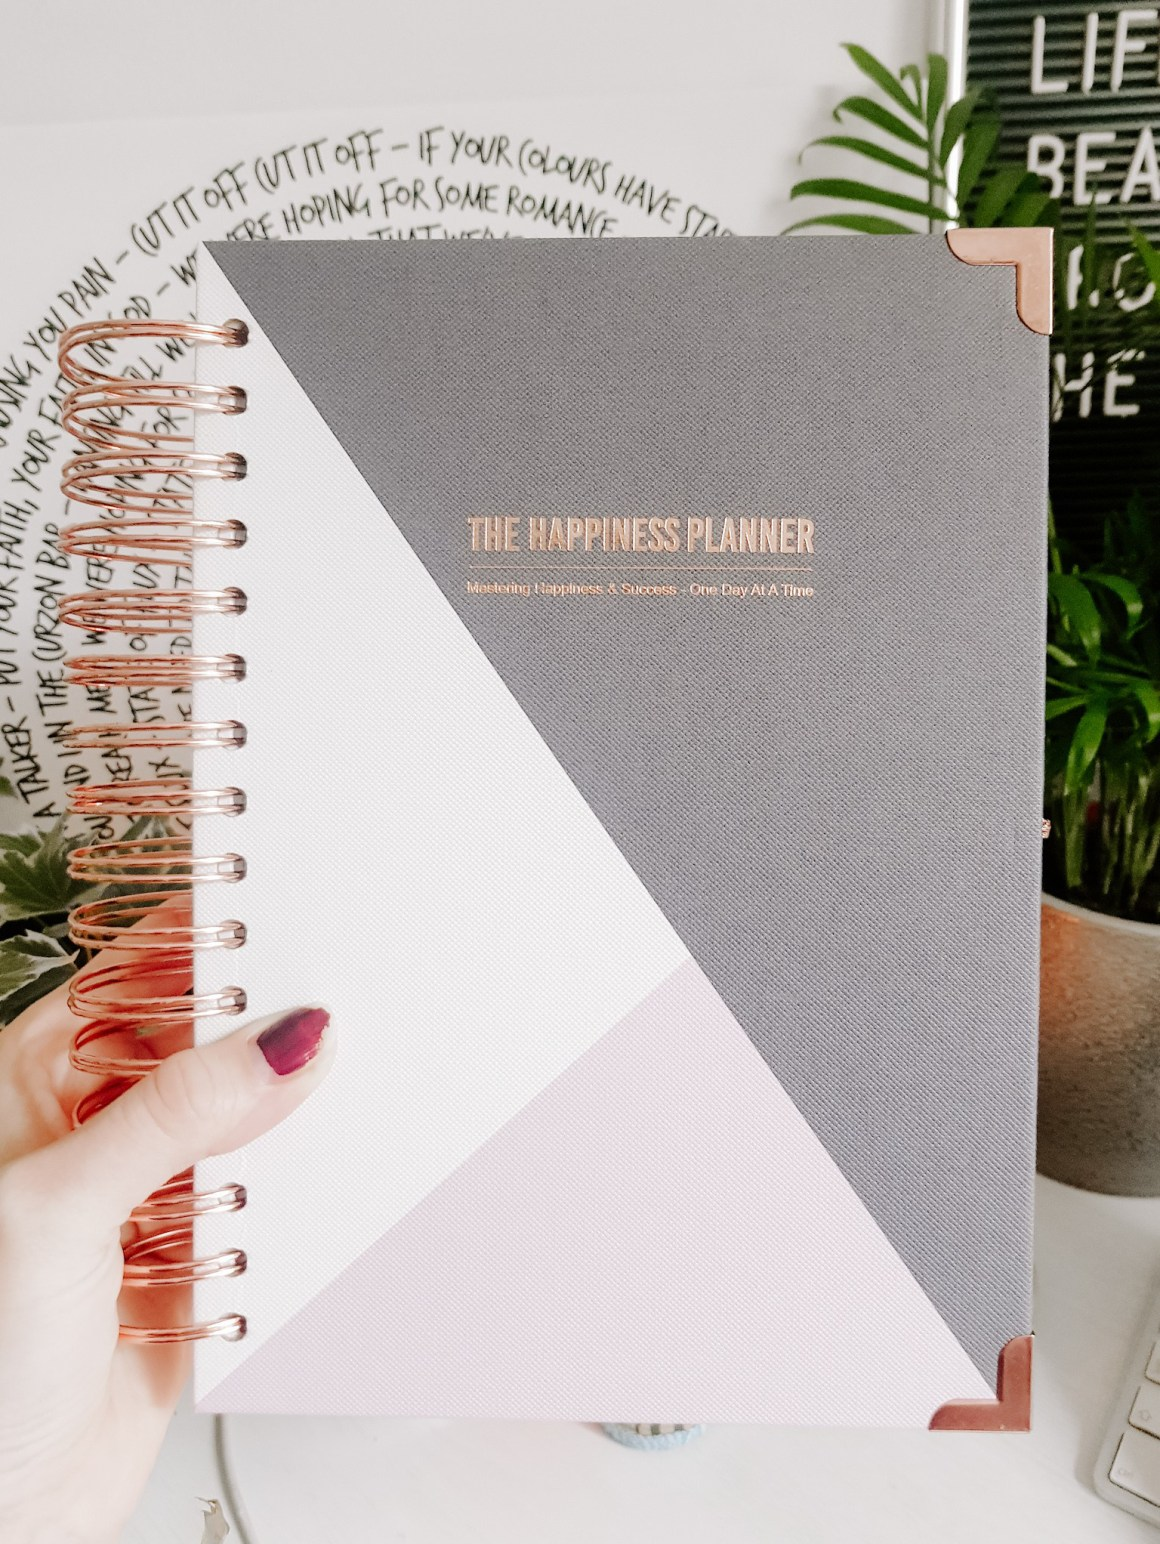 A photo of the Happiness Planner journal